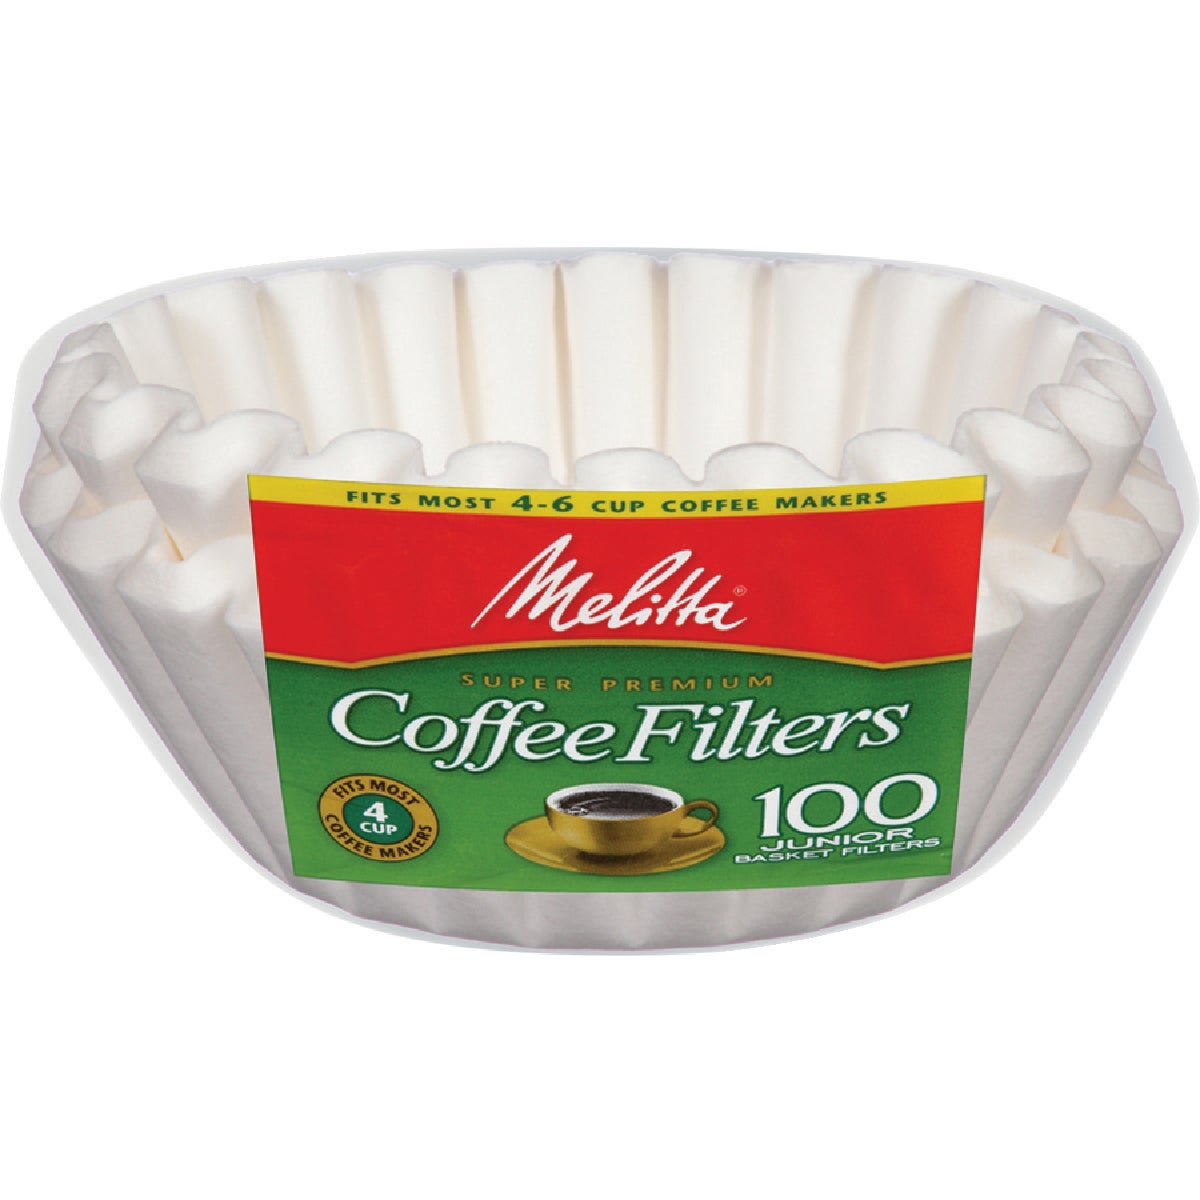 JUNIOR COFFEE FILTER